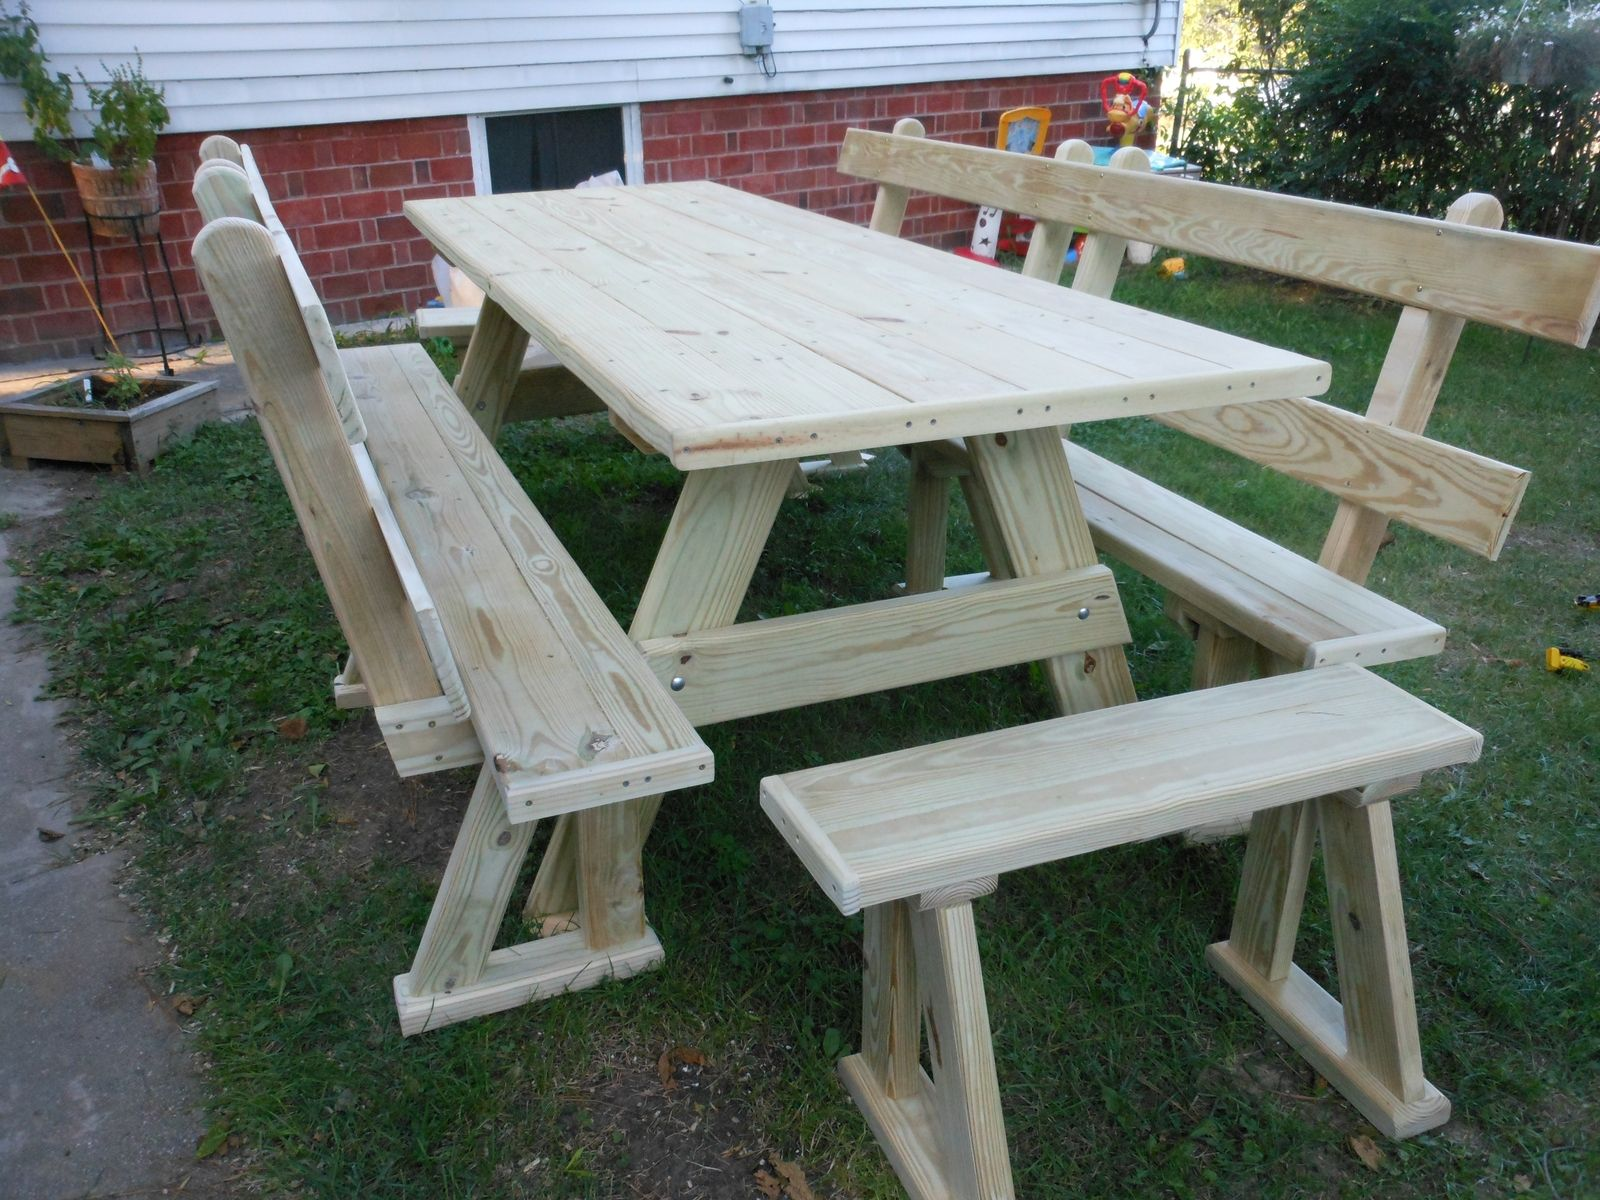 Custom Made Picnic Table With Benches With Backs By Davis Family Creations